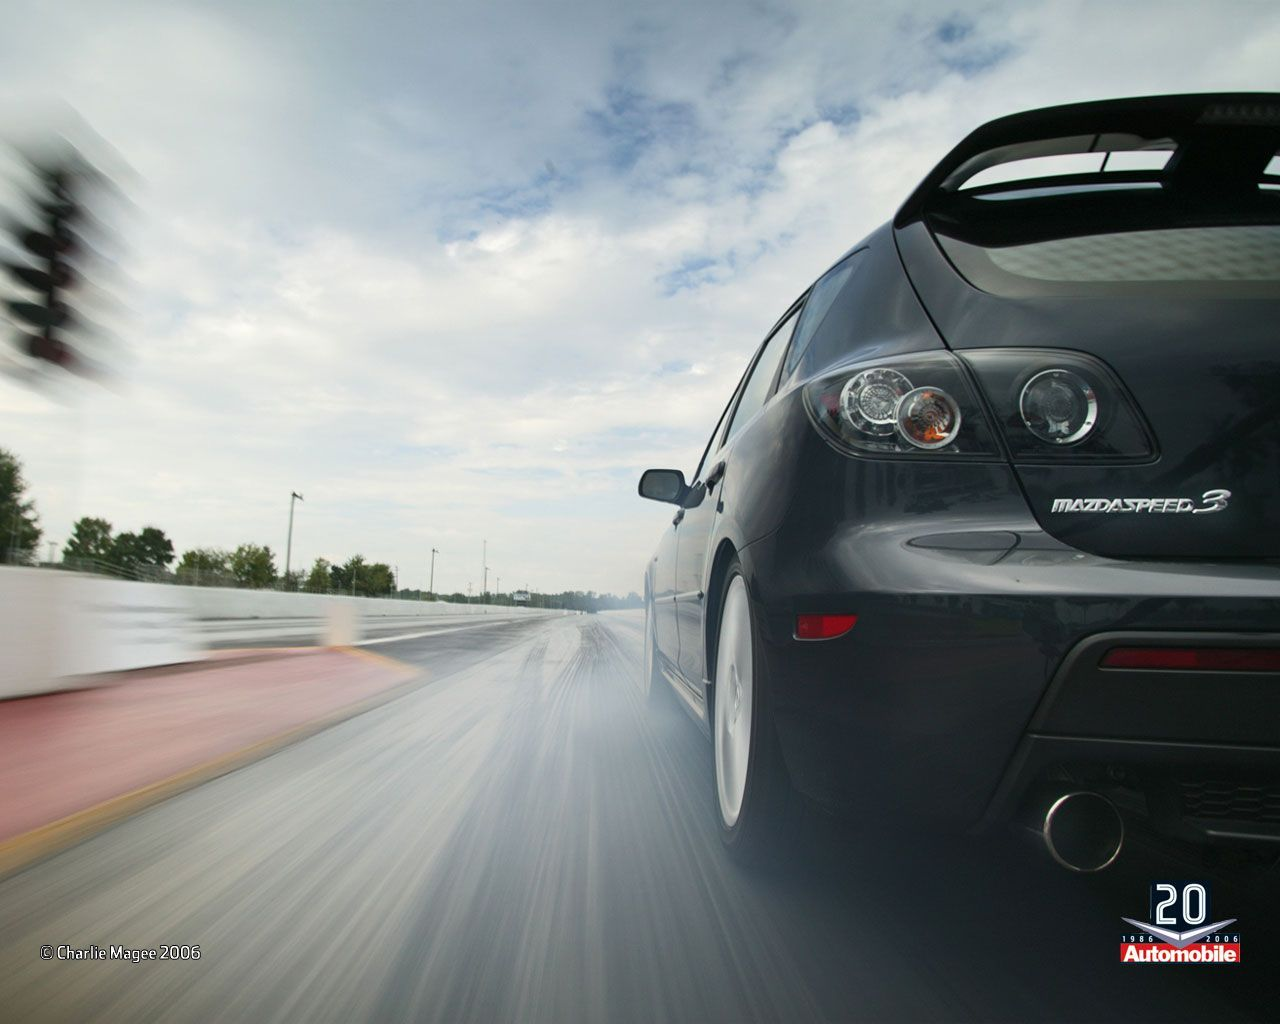 2007 Mazdaspeed 3 Wallpaper Photo Gallery Multimedia Pictures And 1280x1024